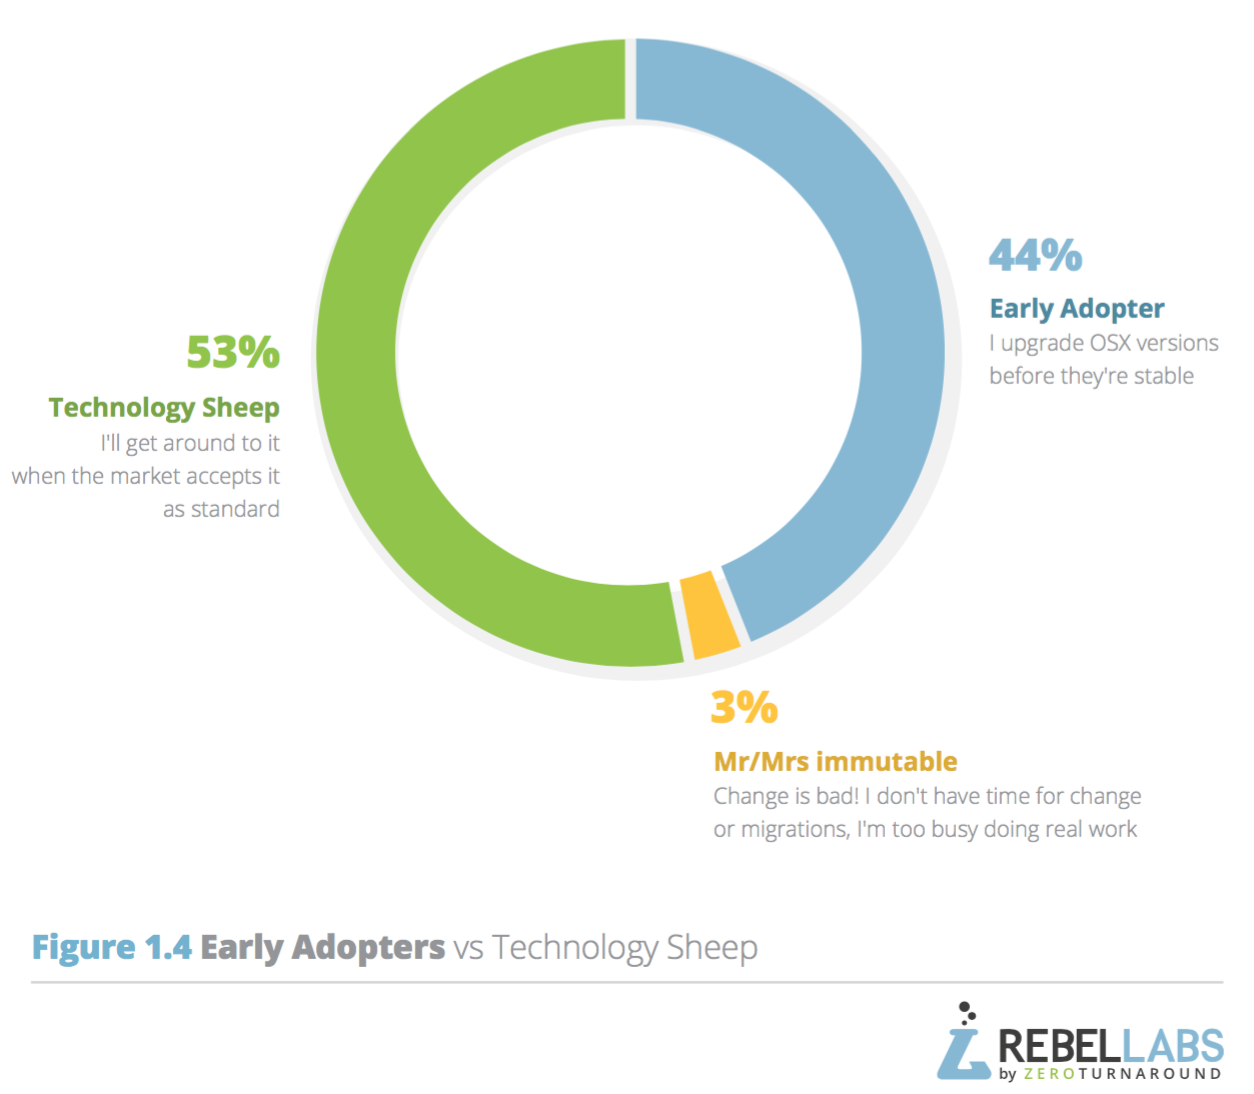 pie chart showing percentage of respondents early adopters vs sheep